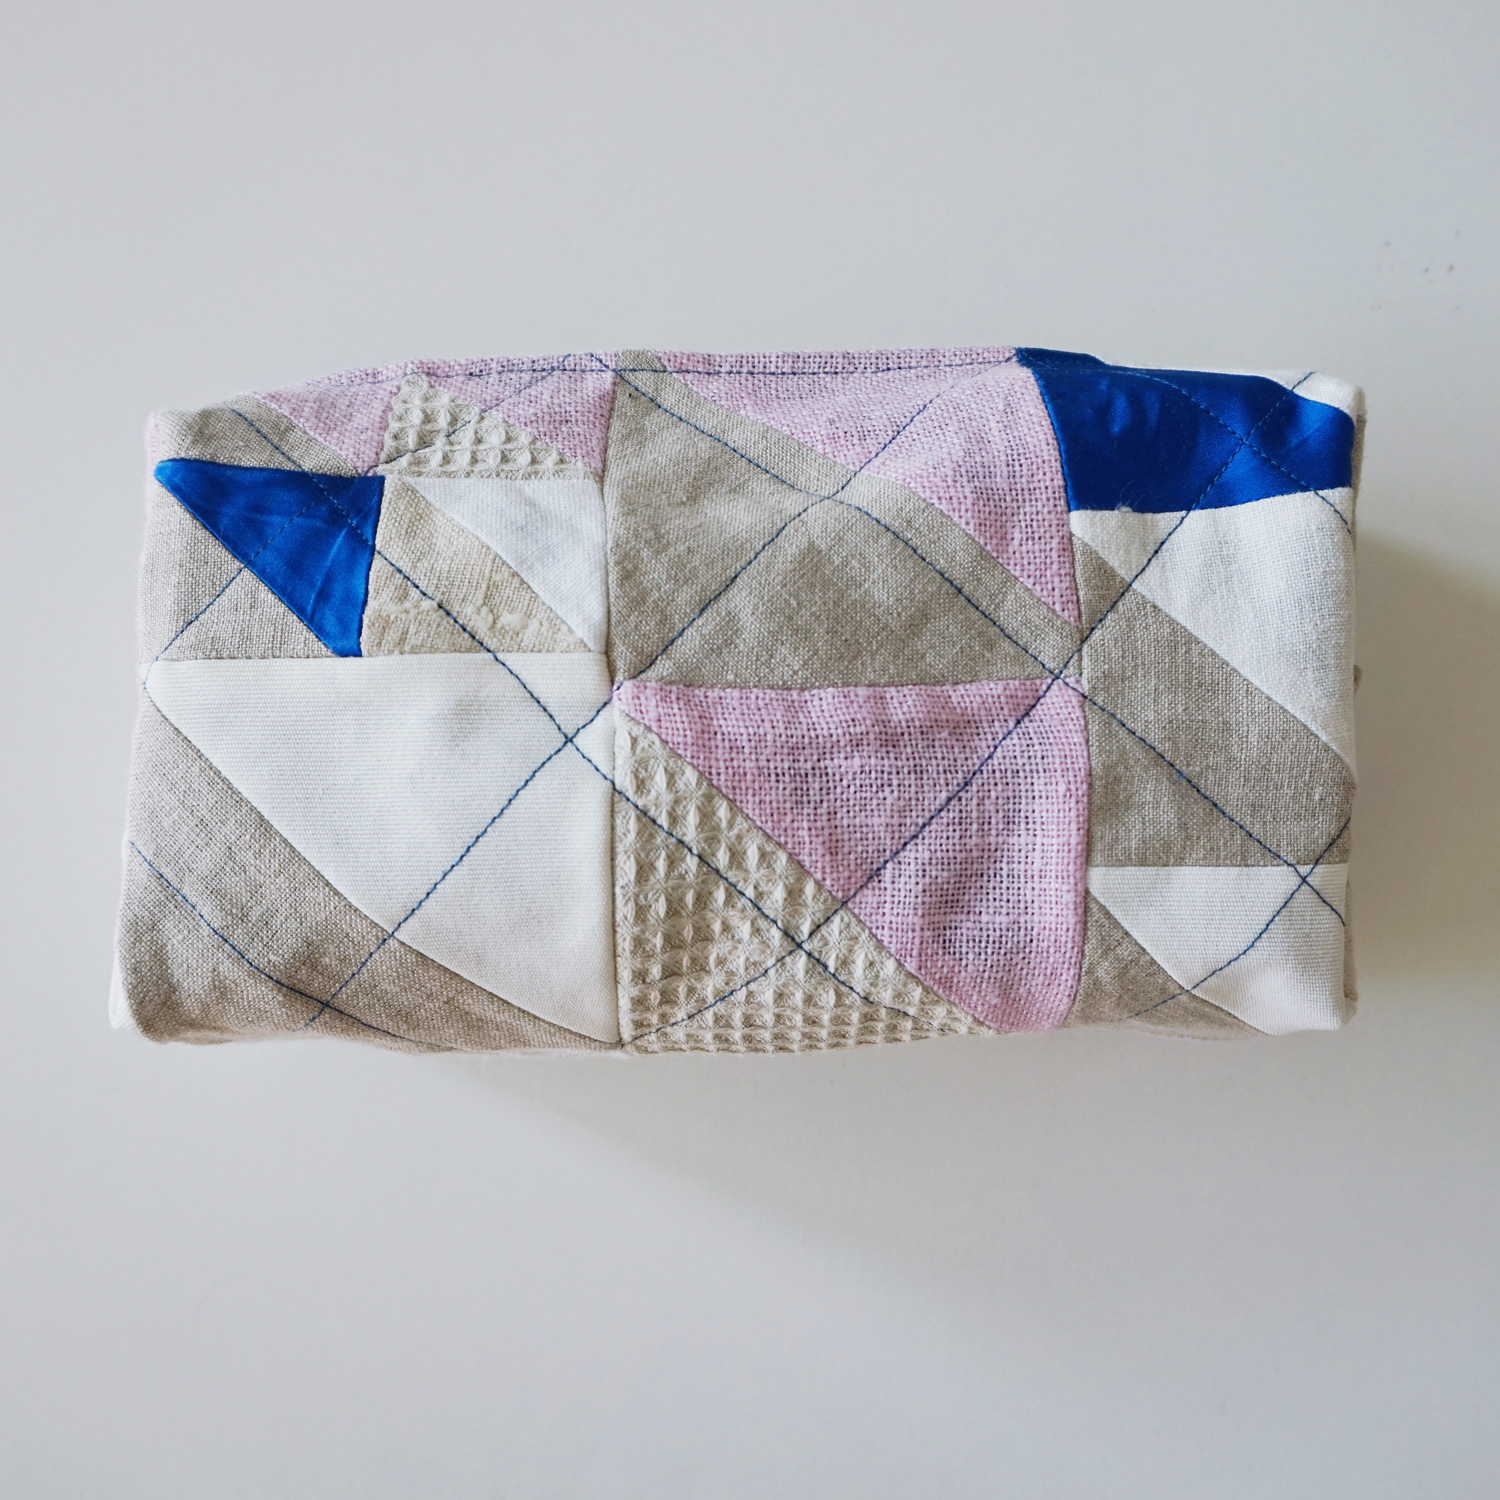 A handy quilted boxed pouch, that will hold your essential travel toiletries or extensive pen collection.